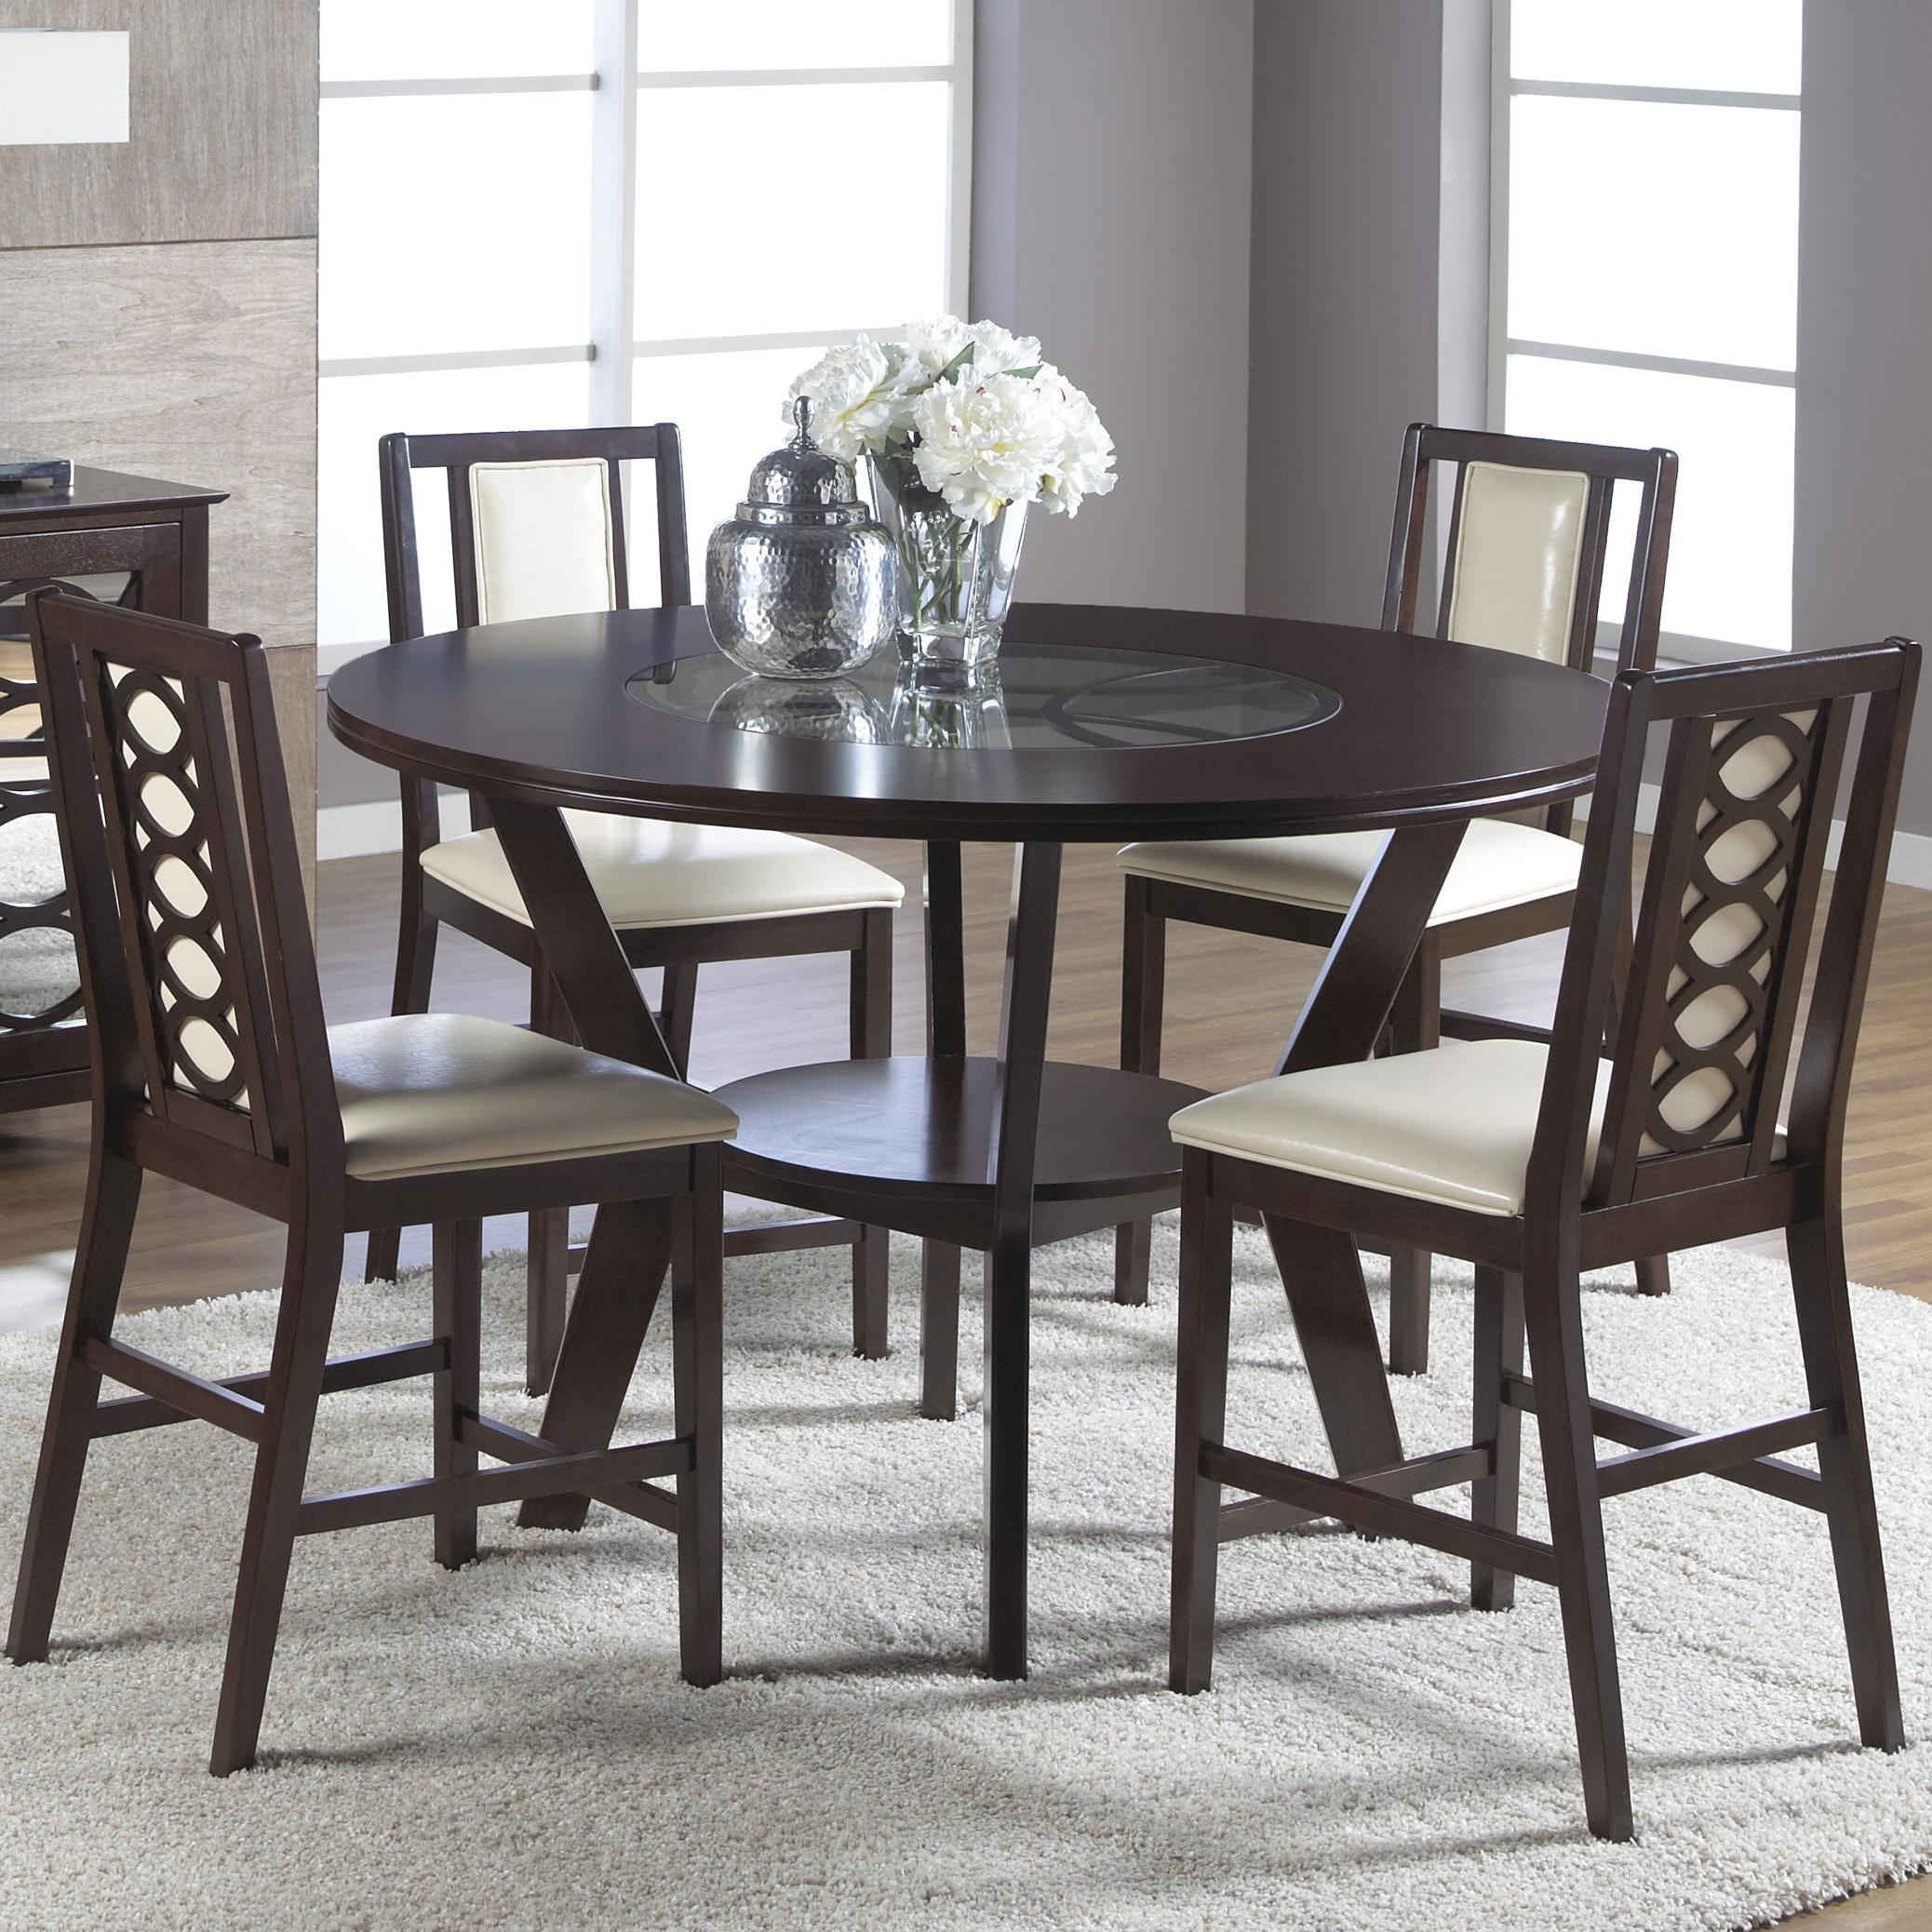 Dusk Dining Room Set Cramco: Cramco, Inc Jasmyn 5 Piece Counter Height Table Set